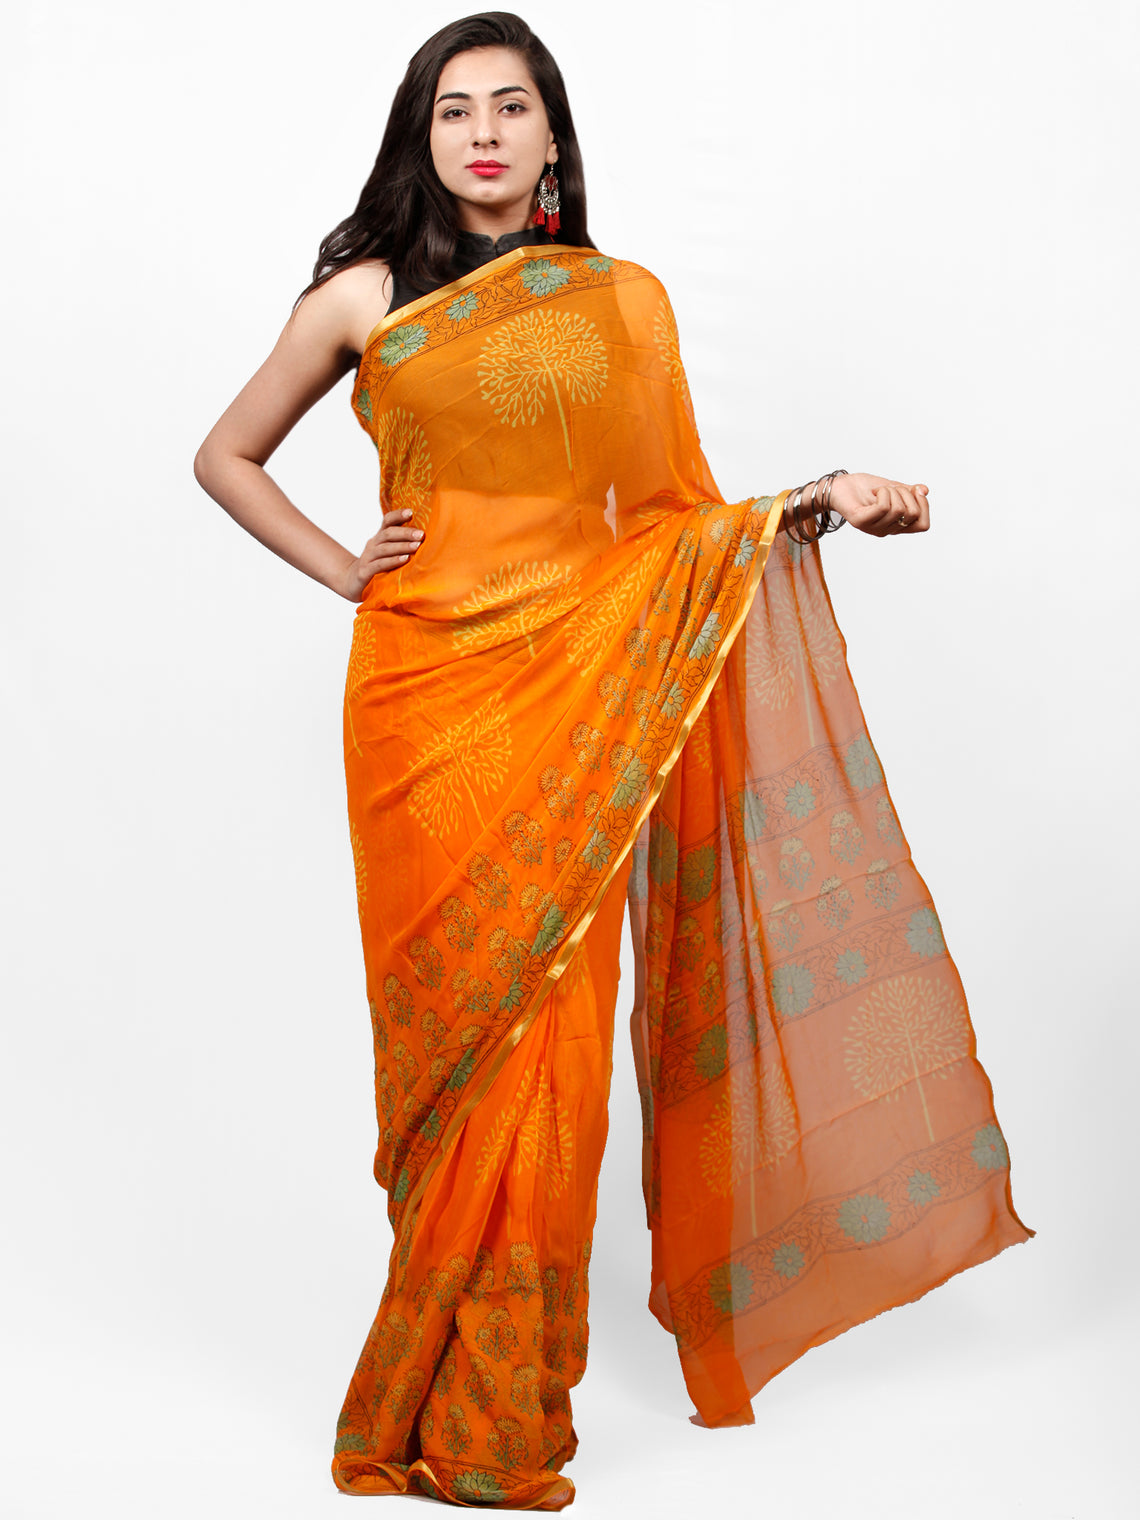 Orange Yellow Green Hand Block Printed Chiffon Saree with Zari Border - S031703292